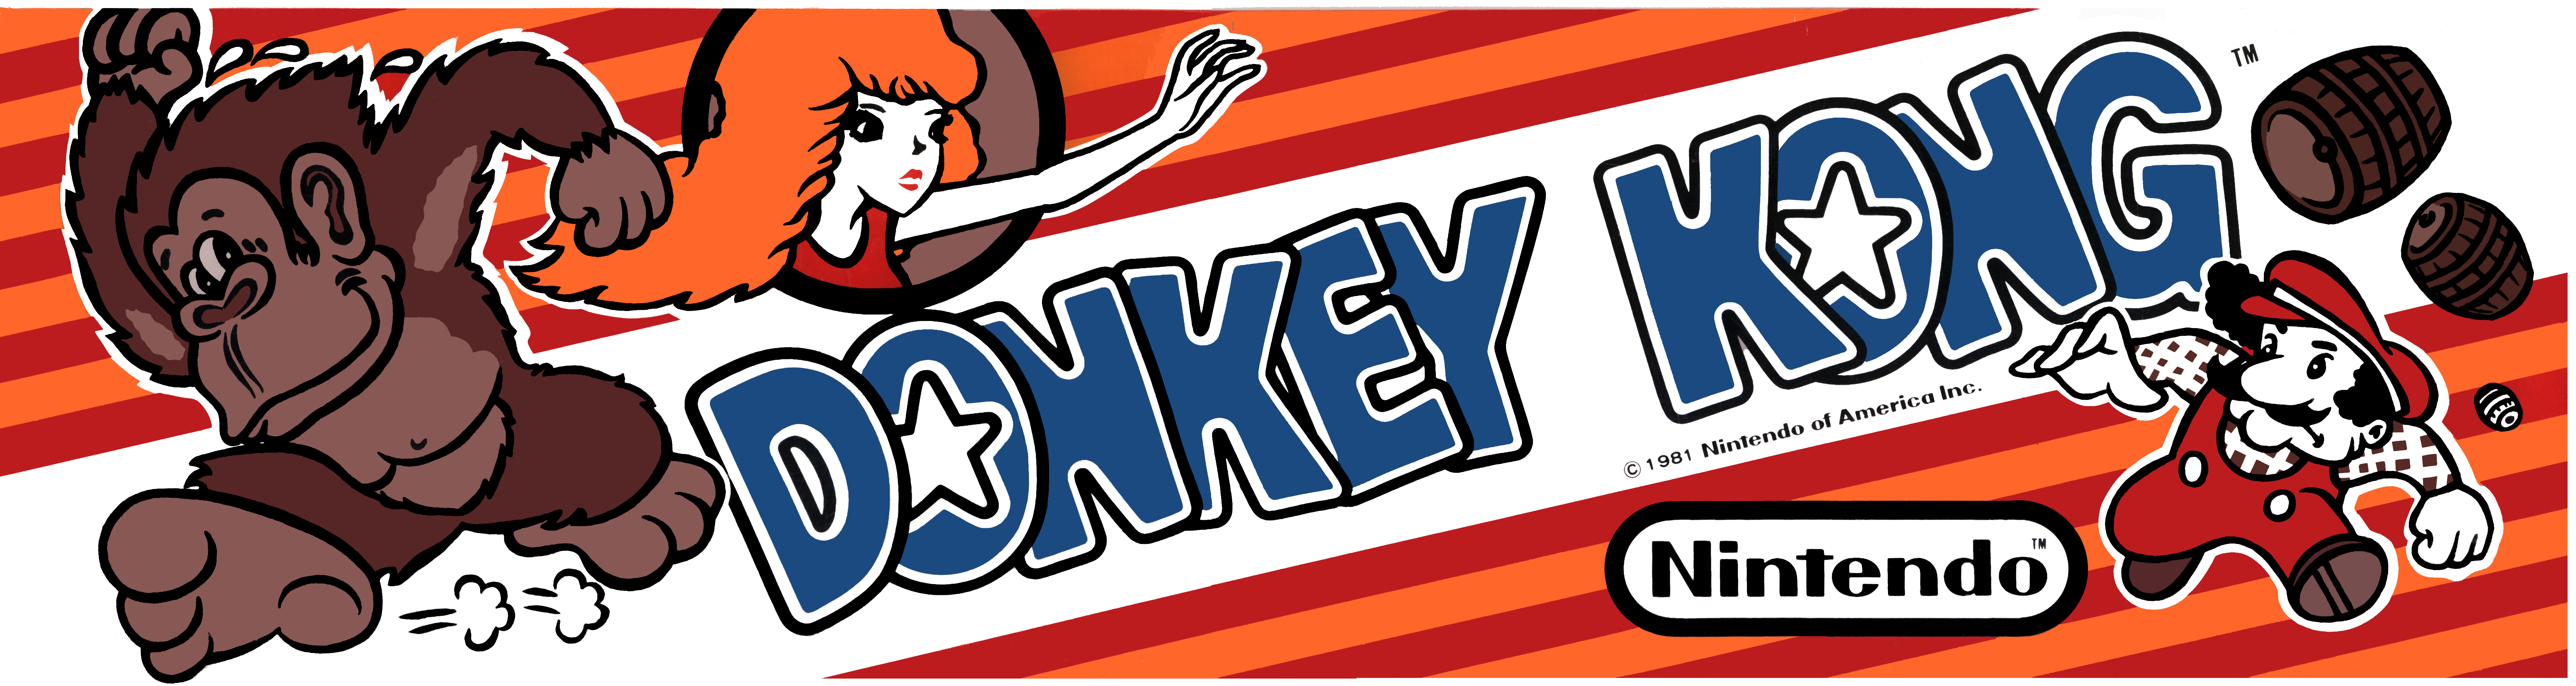 Donkey Kong - GameEx Hi-Score Competition - Spesoft Forums